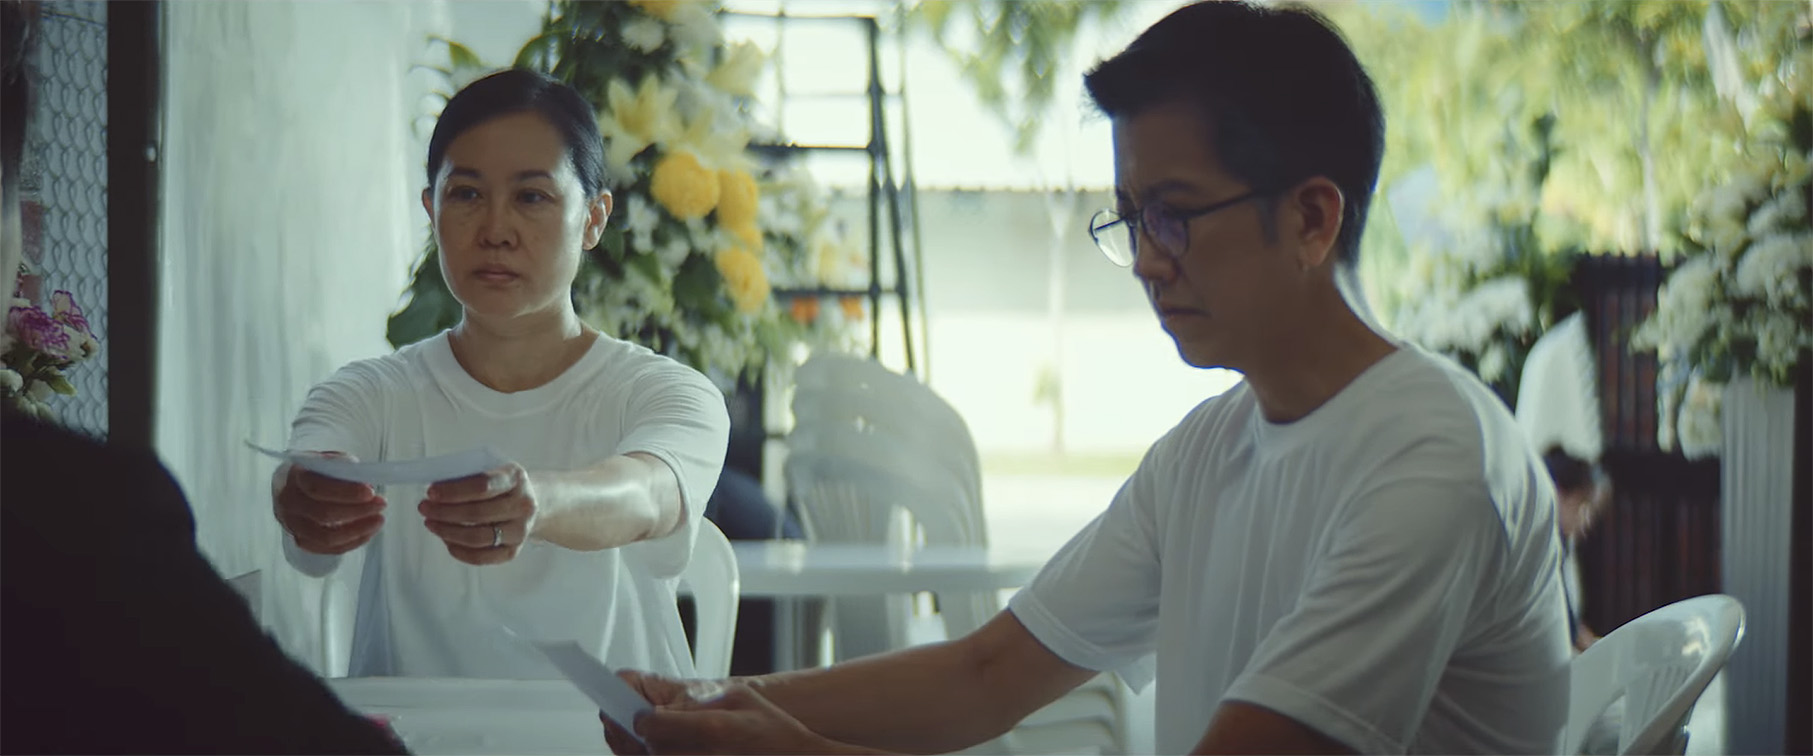 NTUC Income tells Singaporeans to put themselves first via BBH Singapore campaign